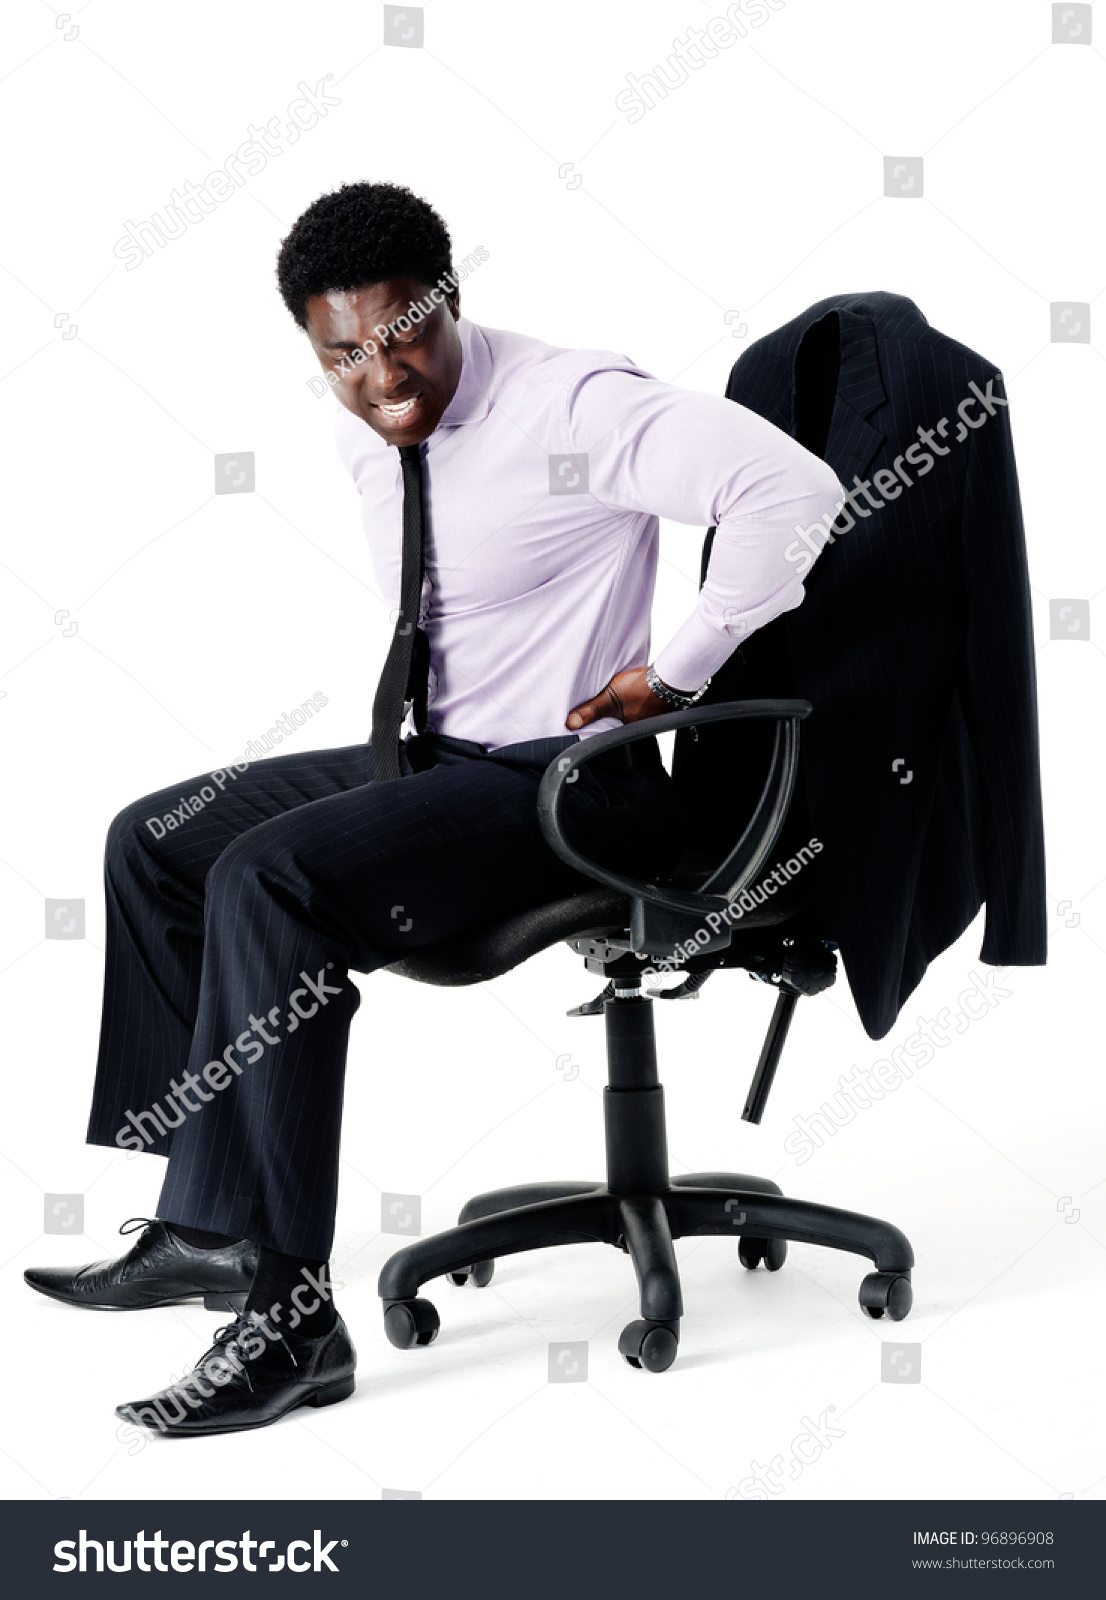 sitting posture on chair in office modern furniture chairs designs black businessman pain from his